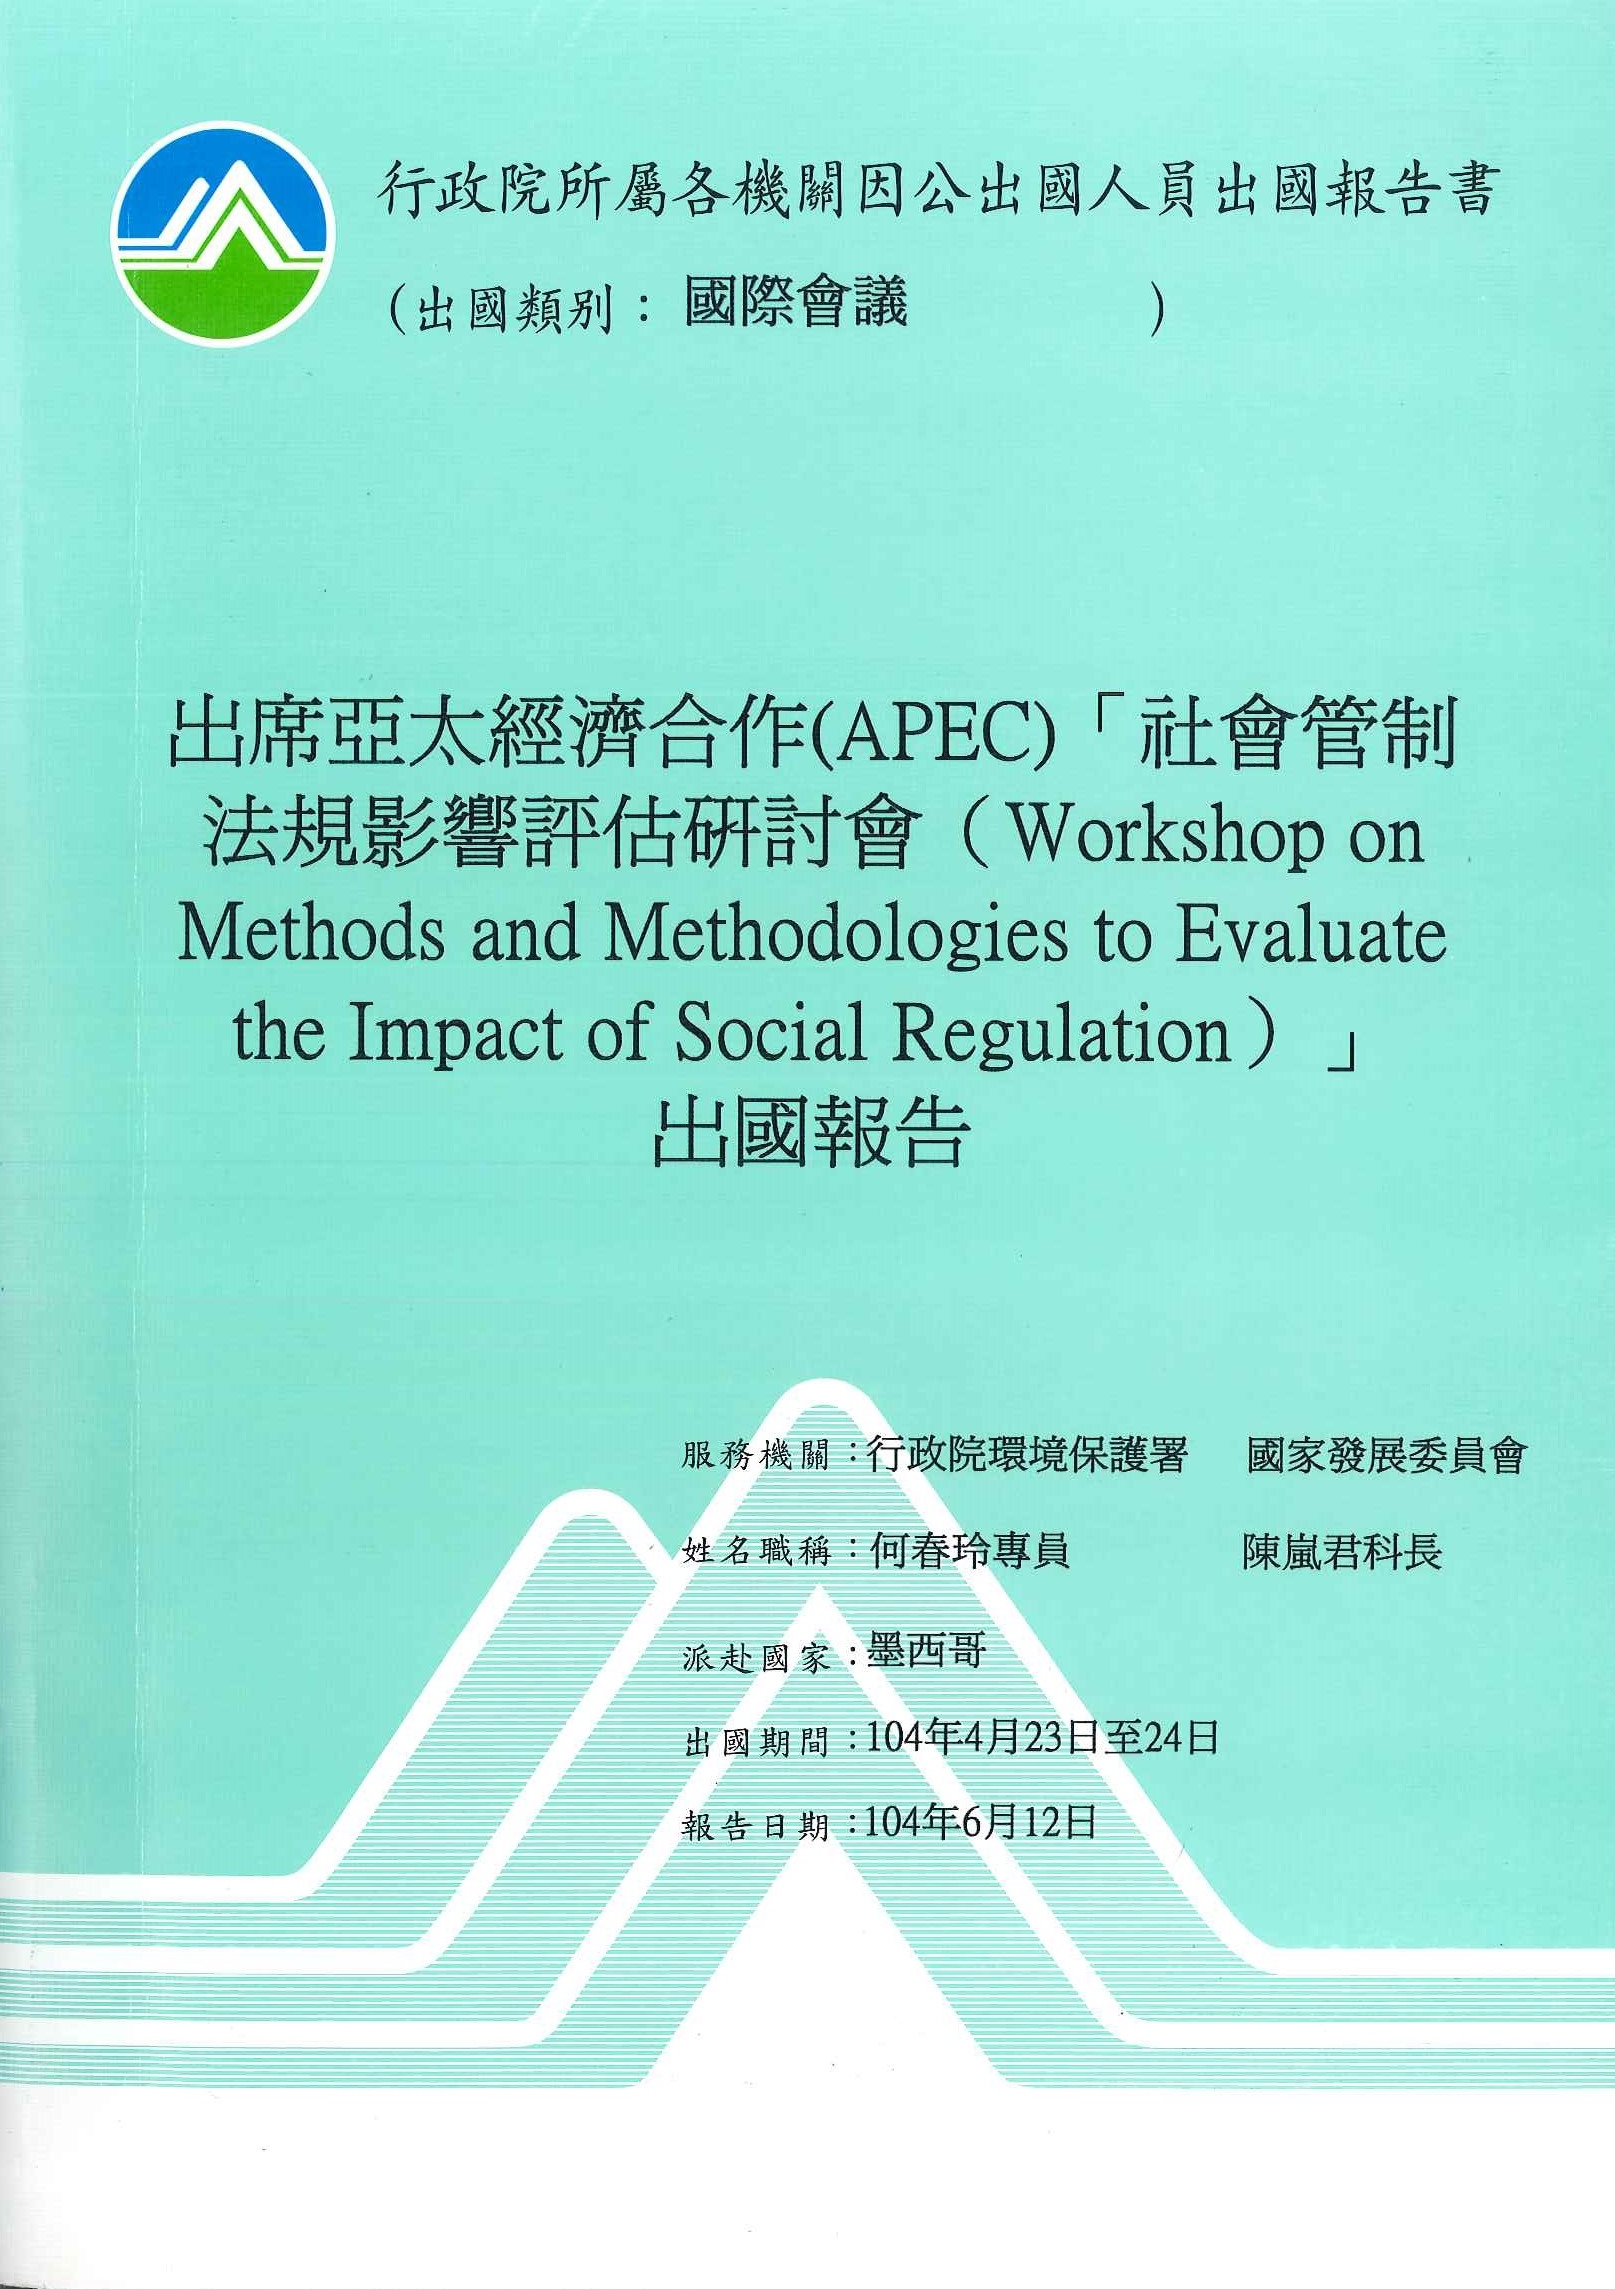 出席亞太經濟合作(APEC)社會管制法規影響評估研討會出國報告=Workshop on methods and methodologies to evaluate the impact of social regulation